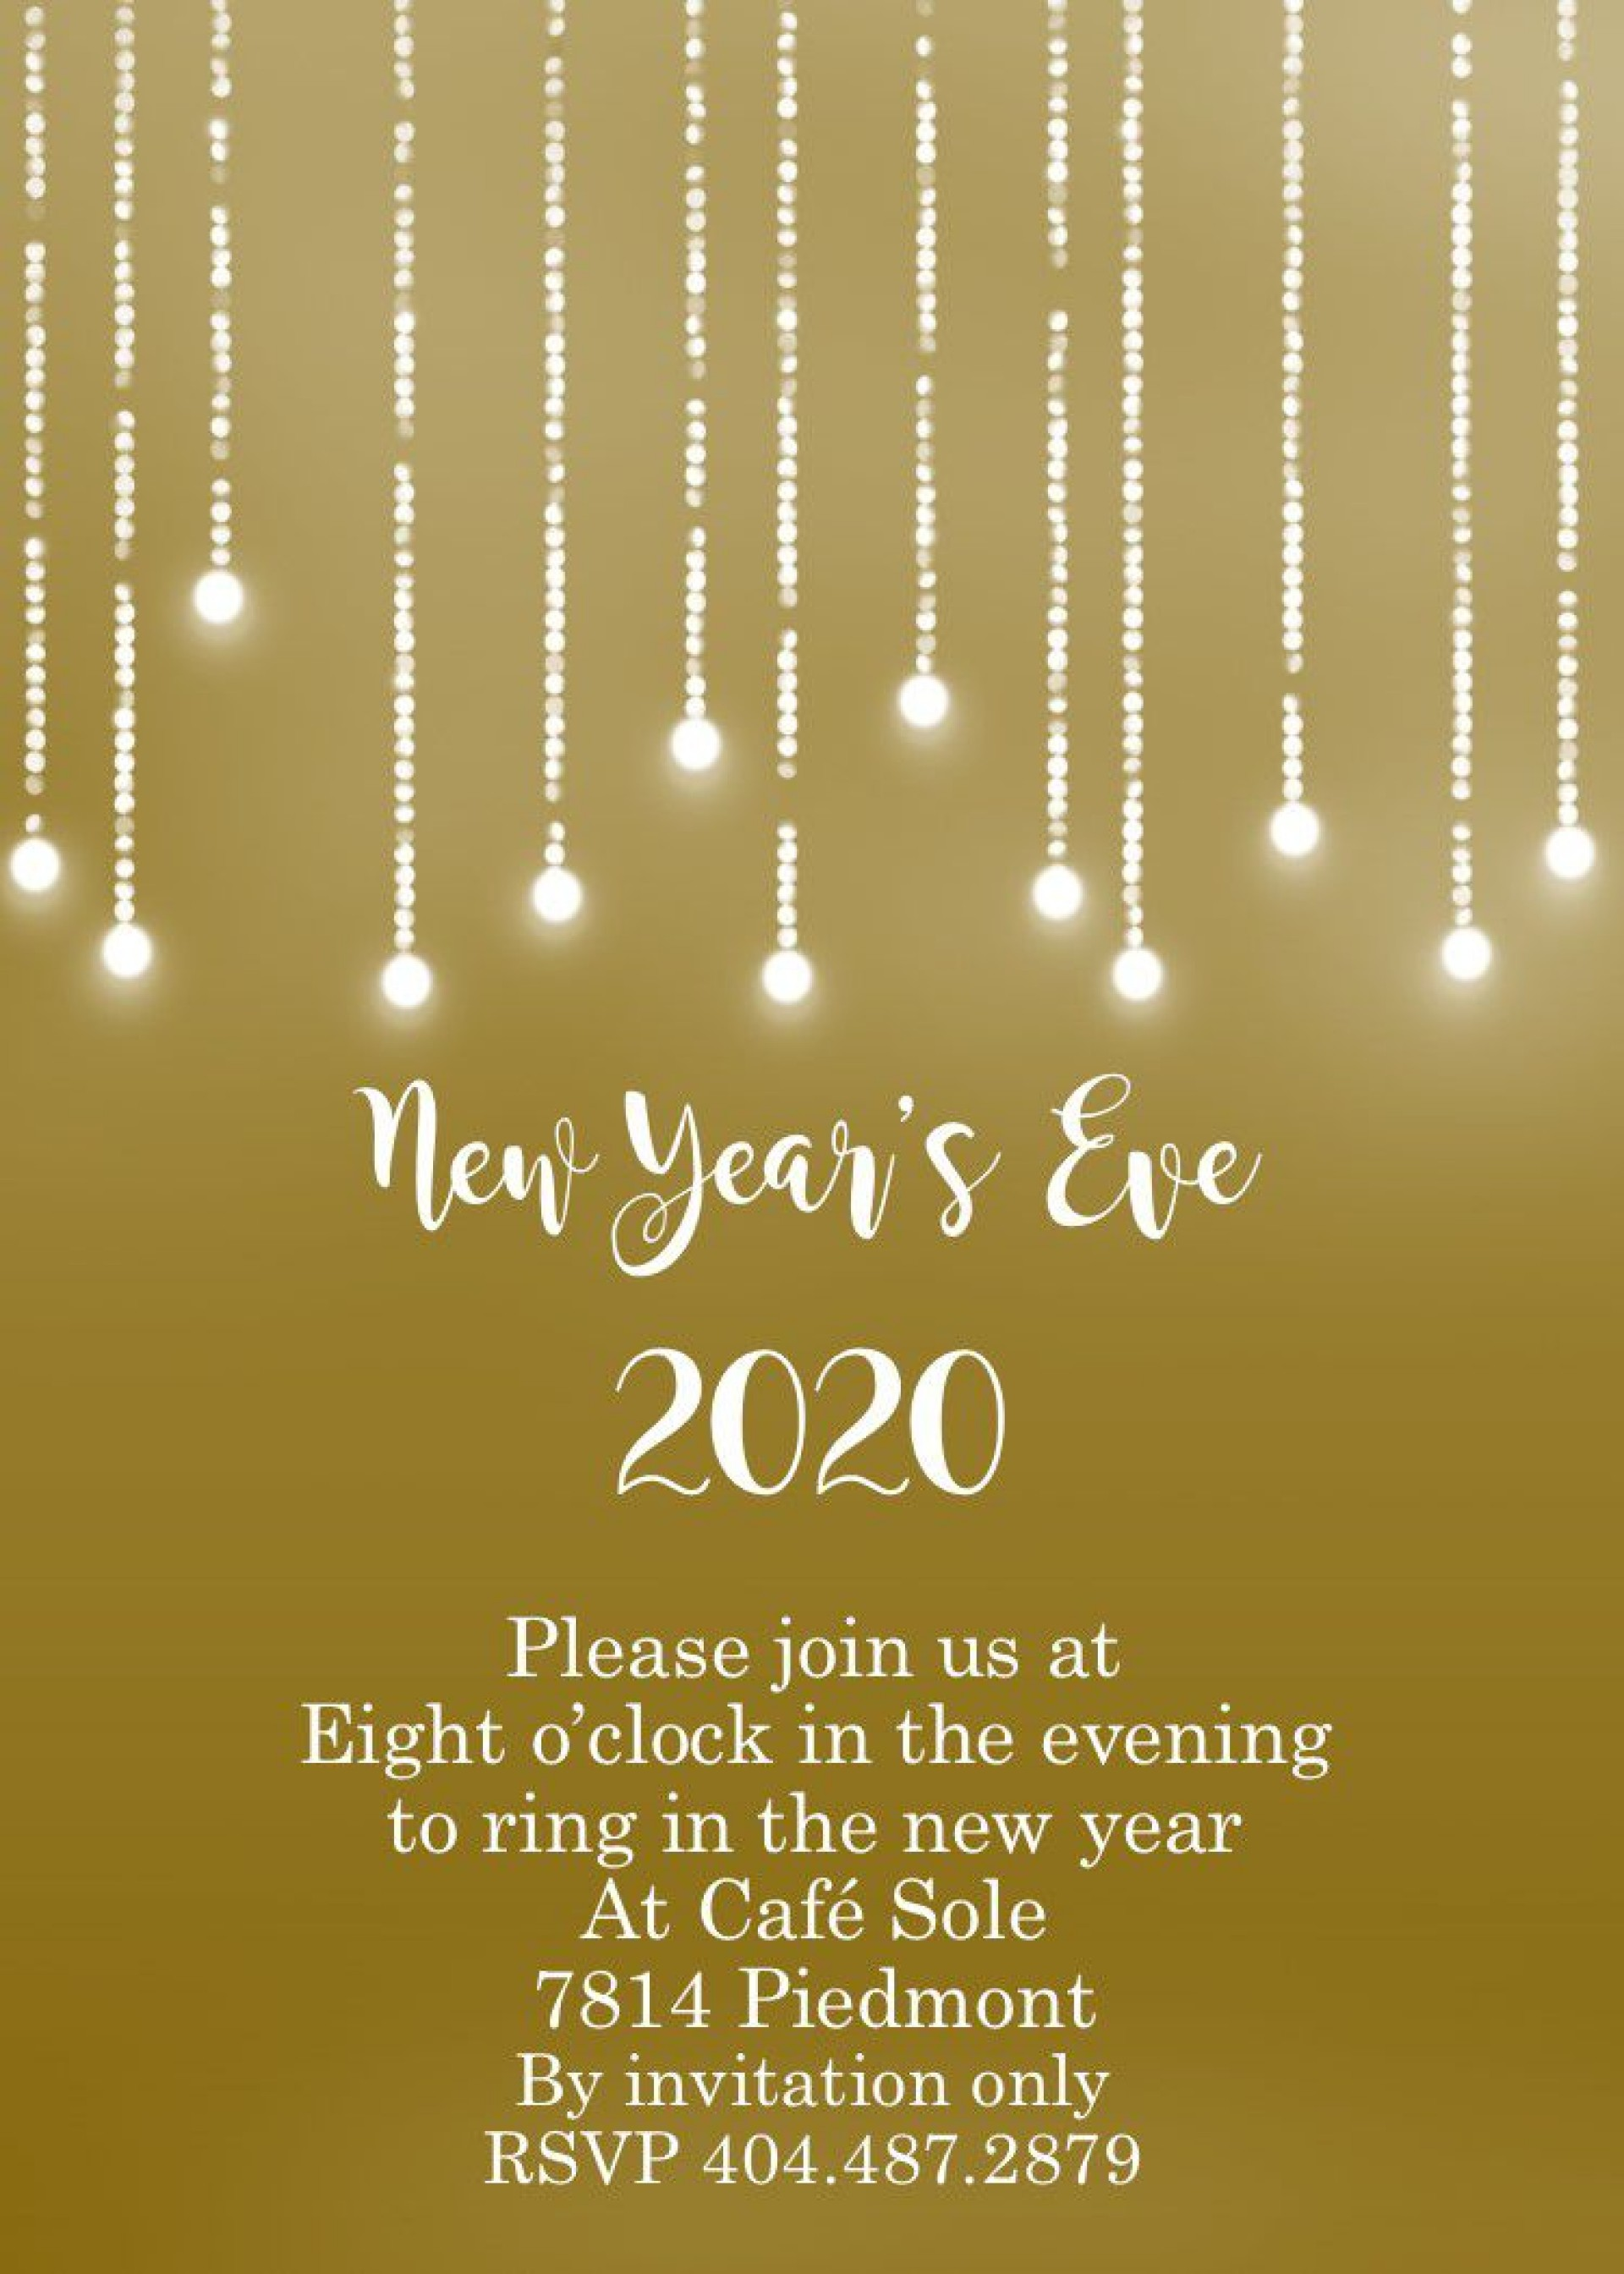 009 Marvelou New Year Eve Invitation Template Photo  Party Free Word1920